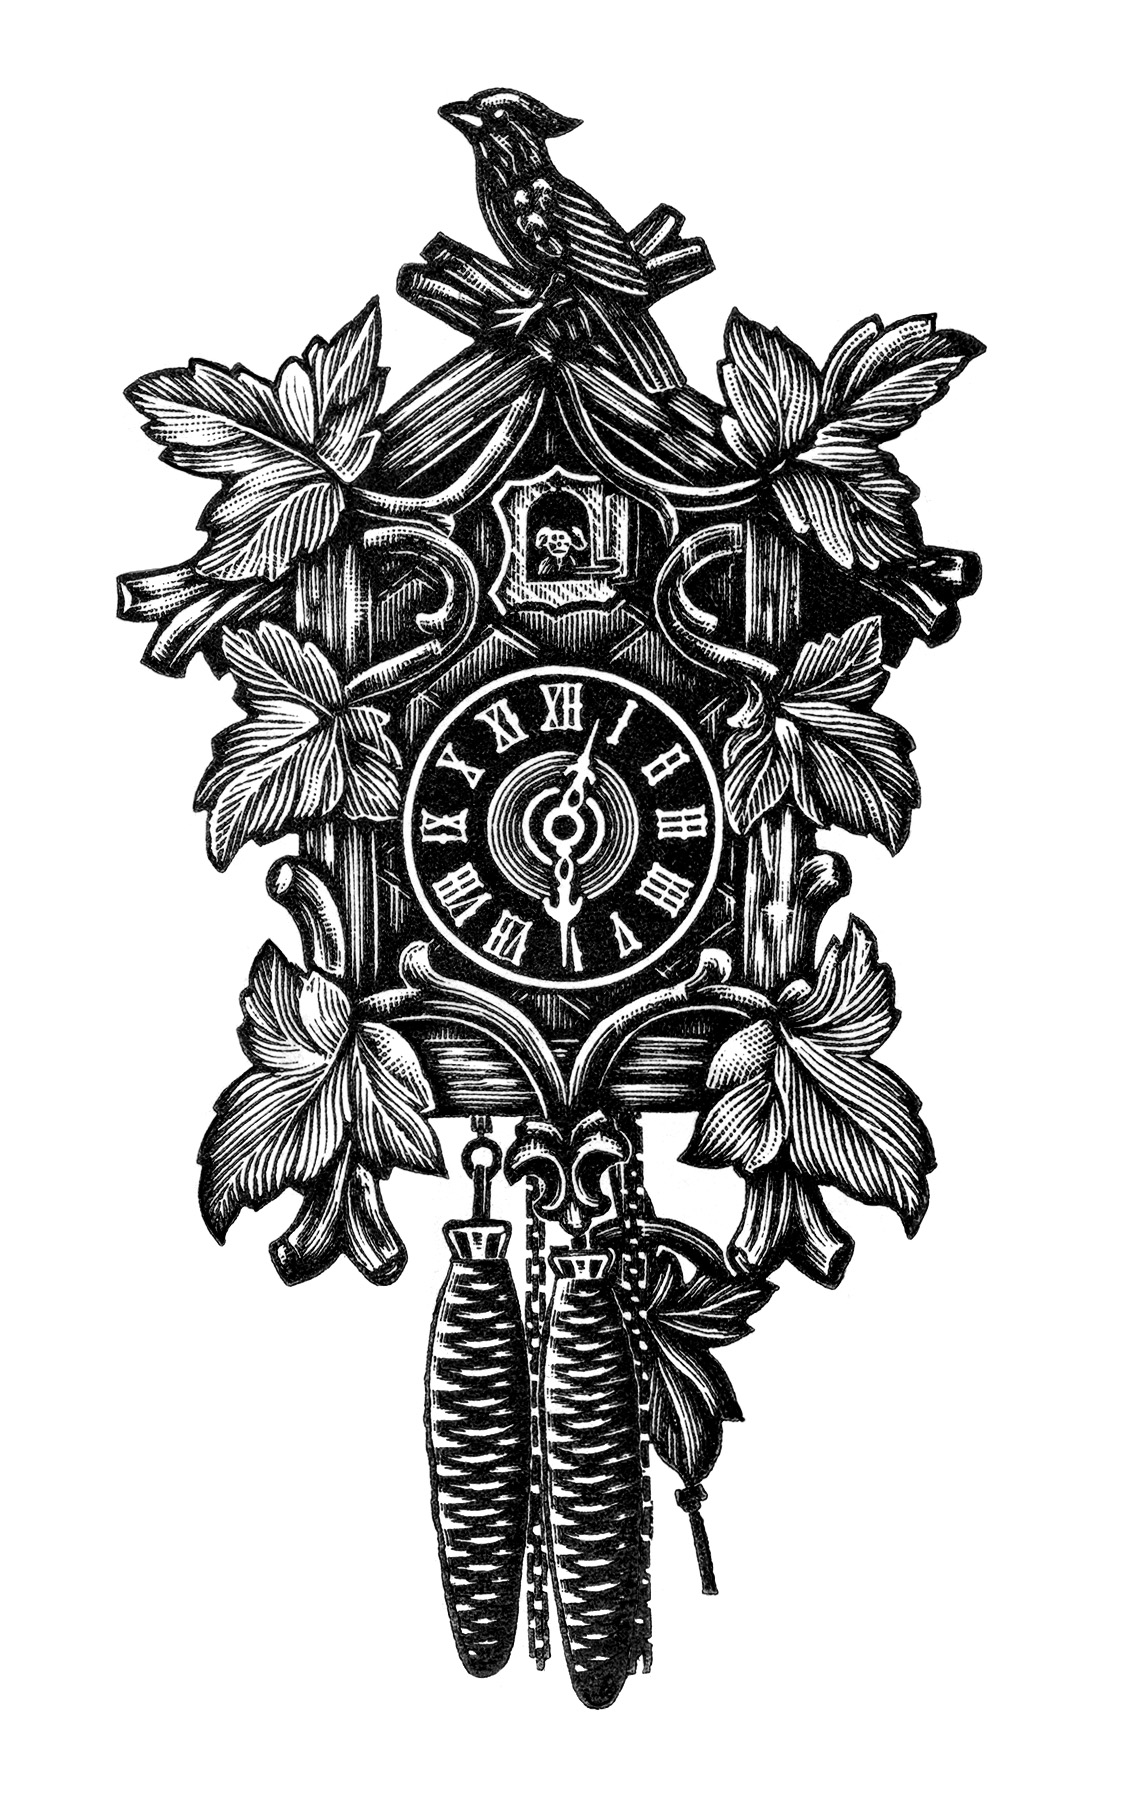 Timeline of James W C  Cuckoo Clock Drawing